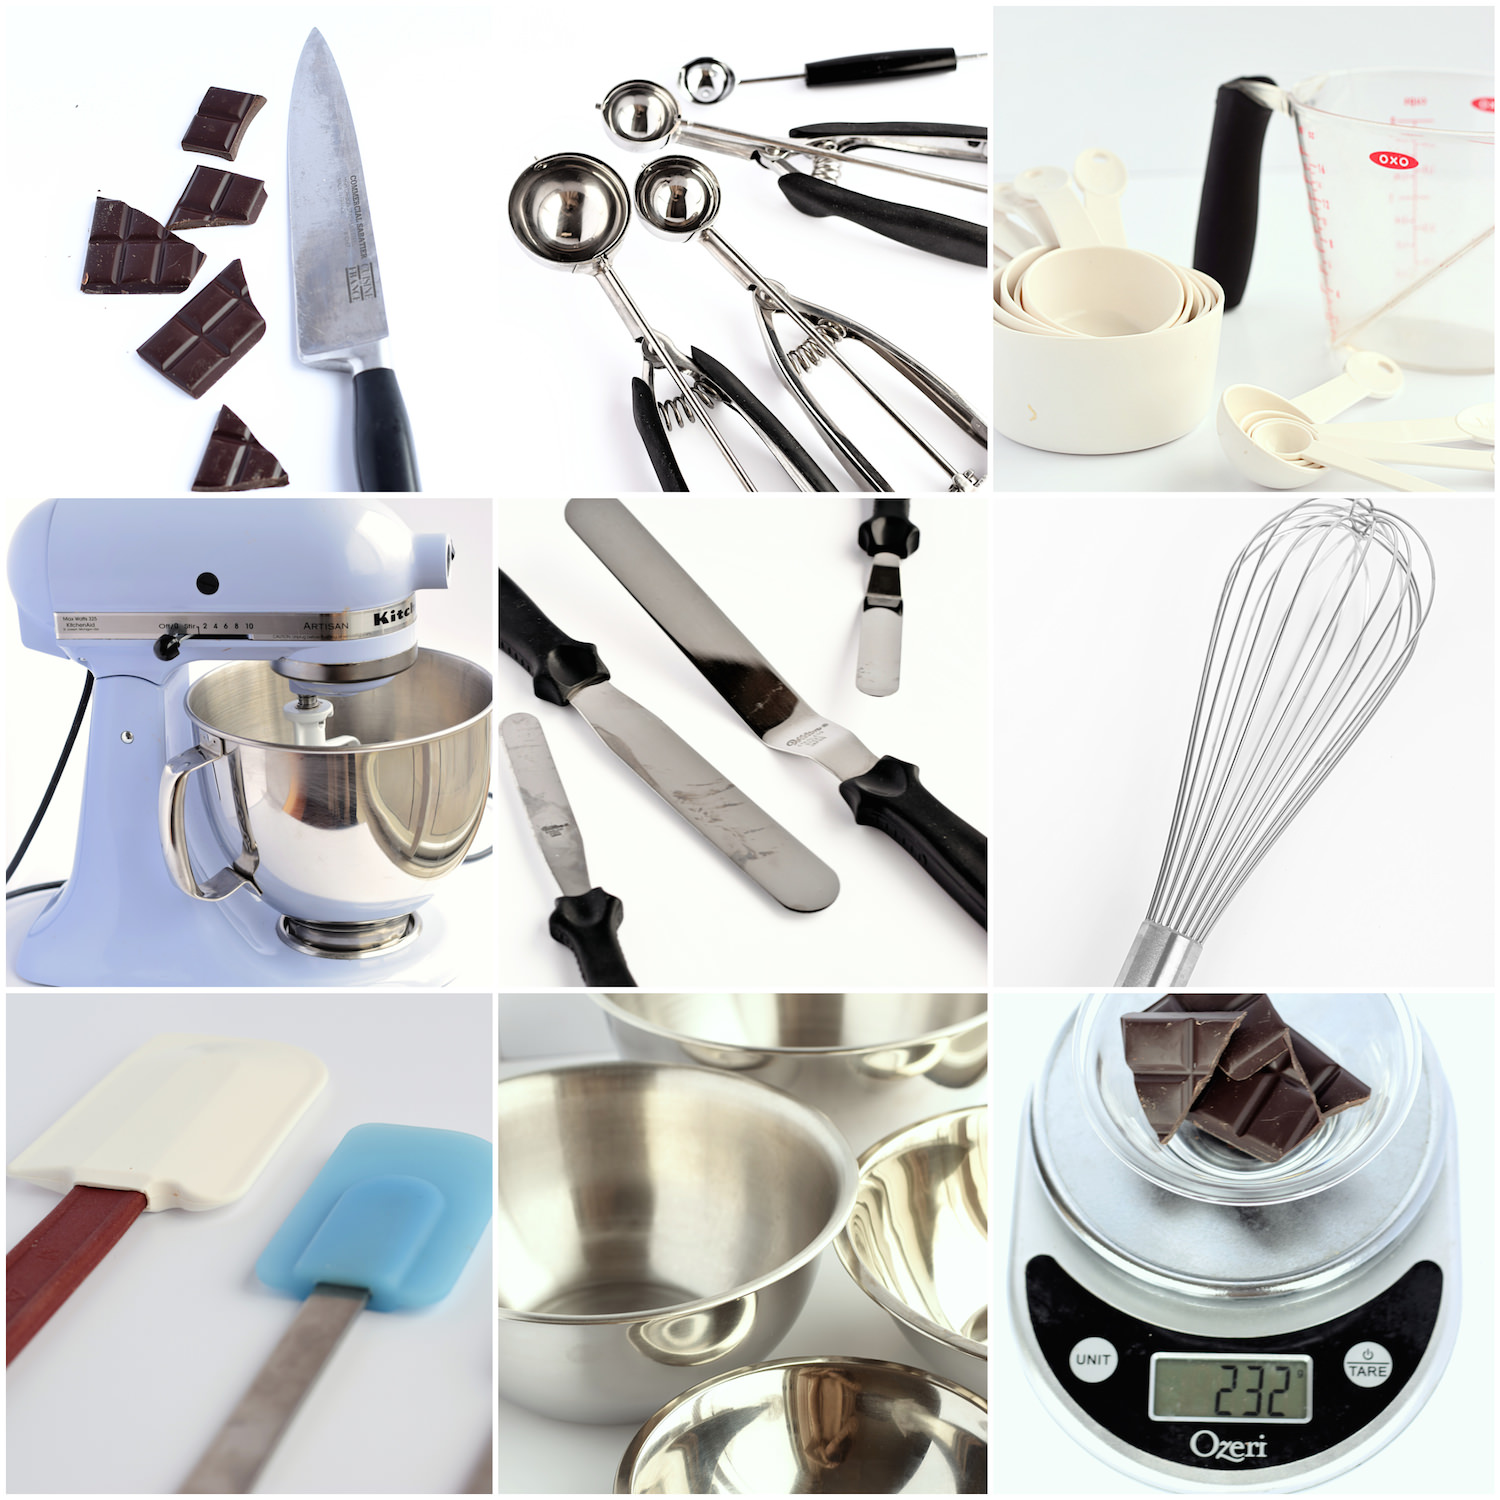 Kitchen Shears In Baking: My Top 10 Baking Tools